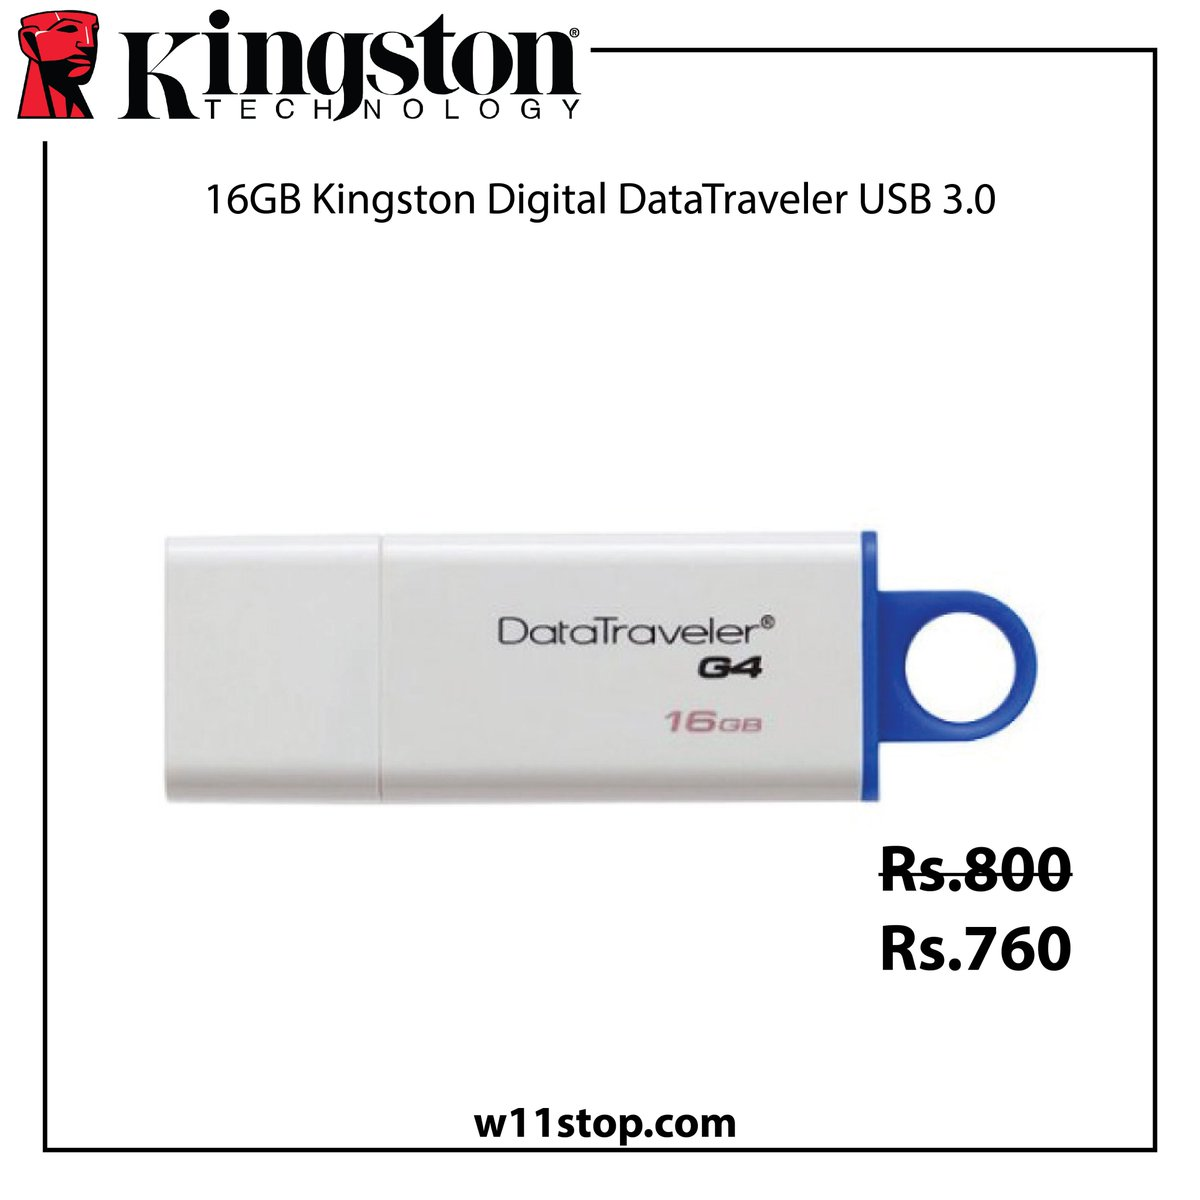 Kingston 32gb Usb Hashtag On Twitter Flashdisk Datatraveler Microduo 30 Micro Otg 8gb 16gb Usbs At Discounted Prices Only W11stop Limited Time Offer Grab It Fromhttp Bitly 2jcgxbh Onlineshoppinginpakistan